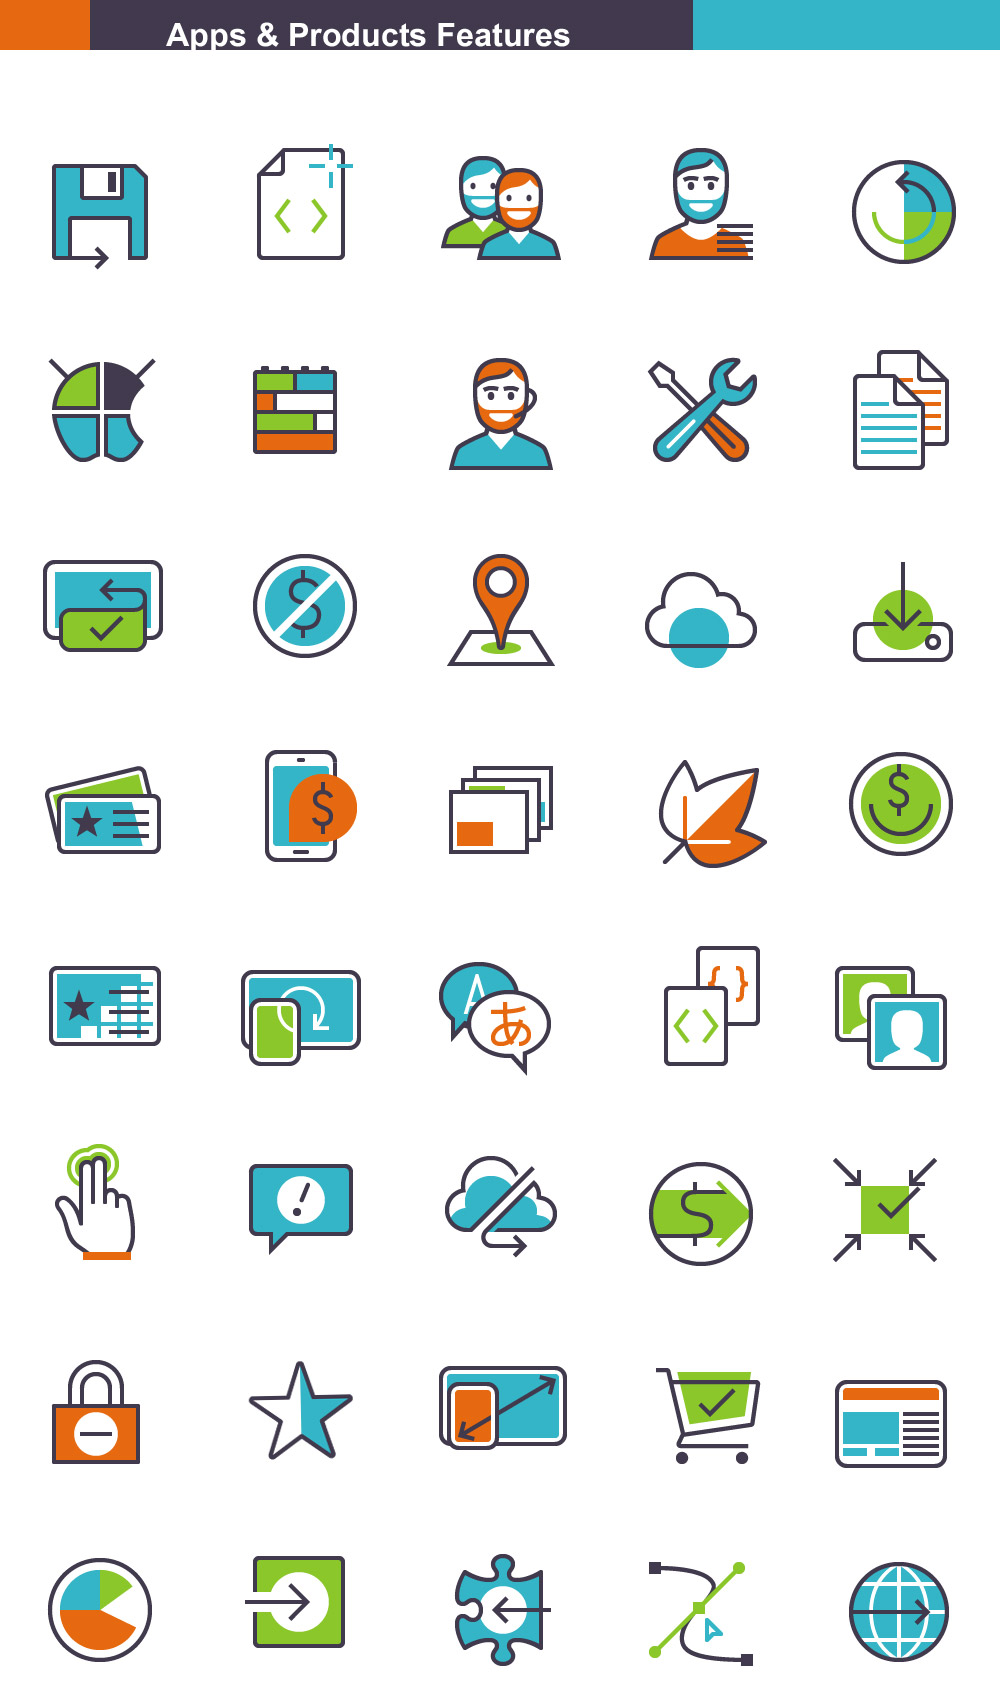 Free Apps & Products Vector Icons